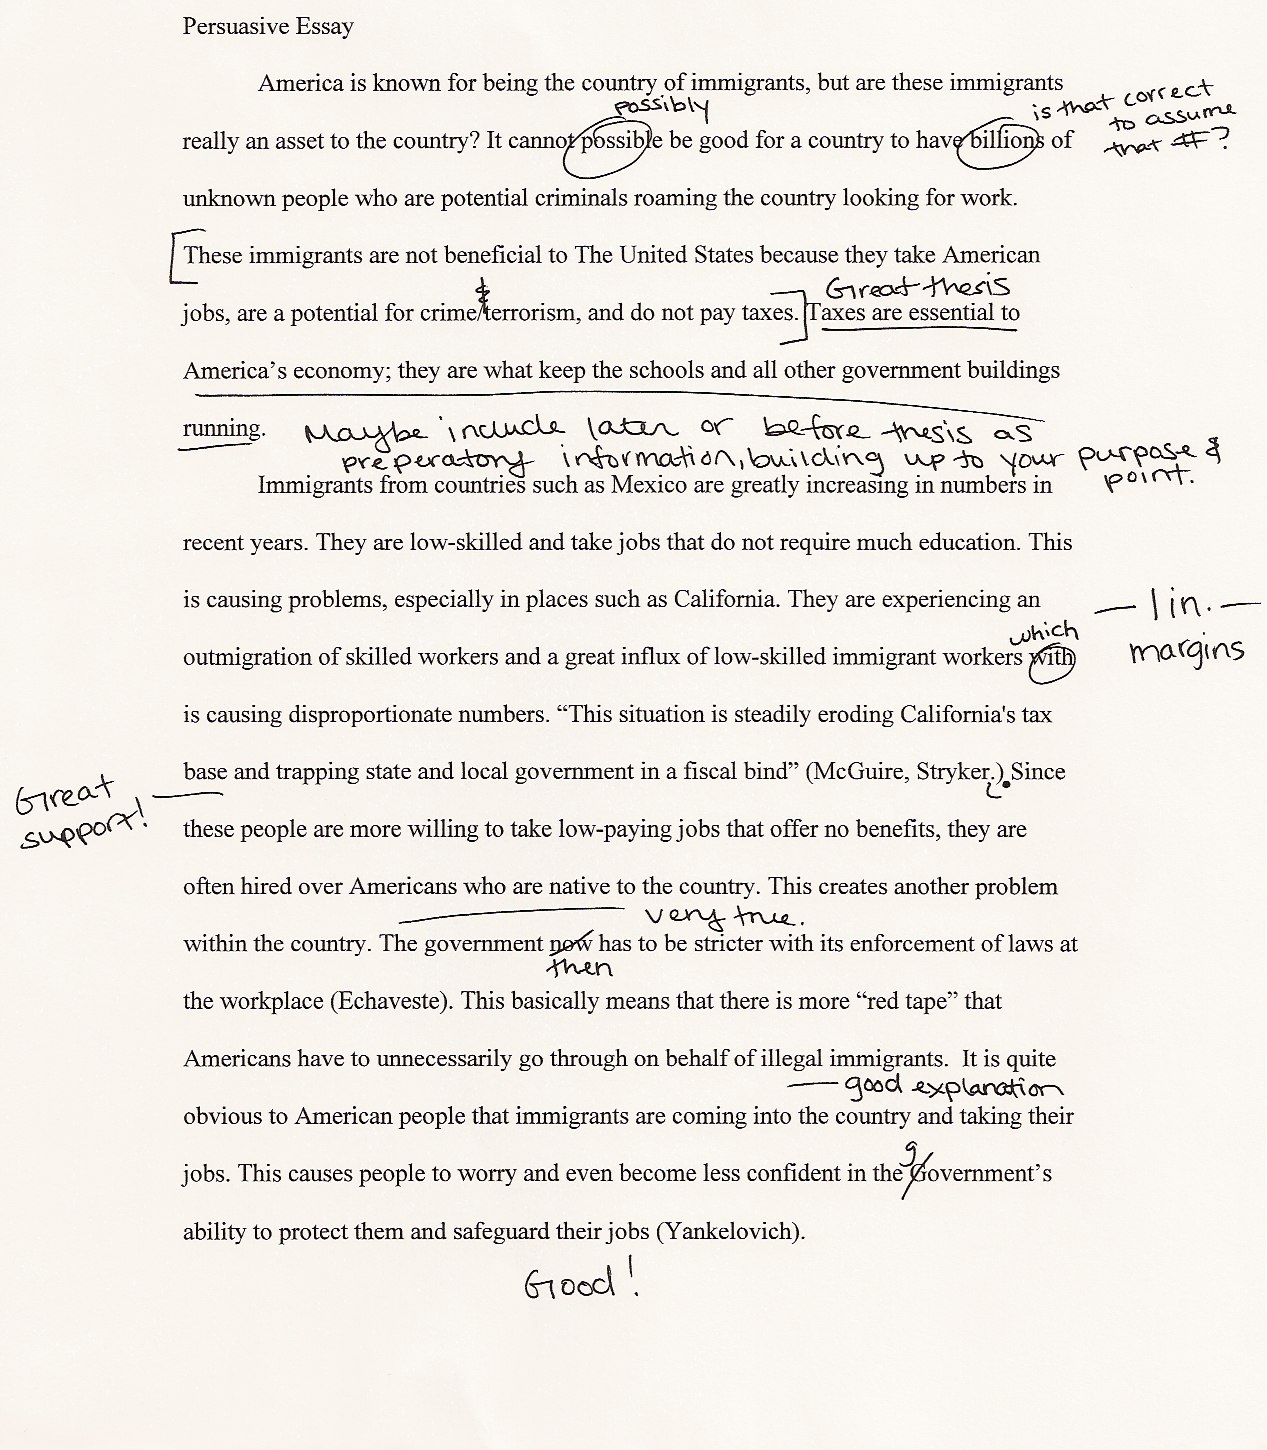 005 Essay Example Good Hook For An Impressive A Examples Of Argumentative On To Kill Mockingbird About Music Full